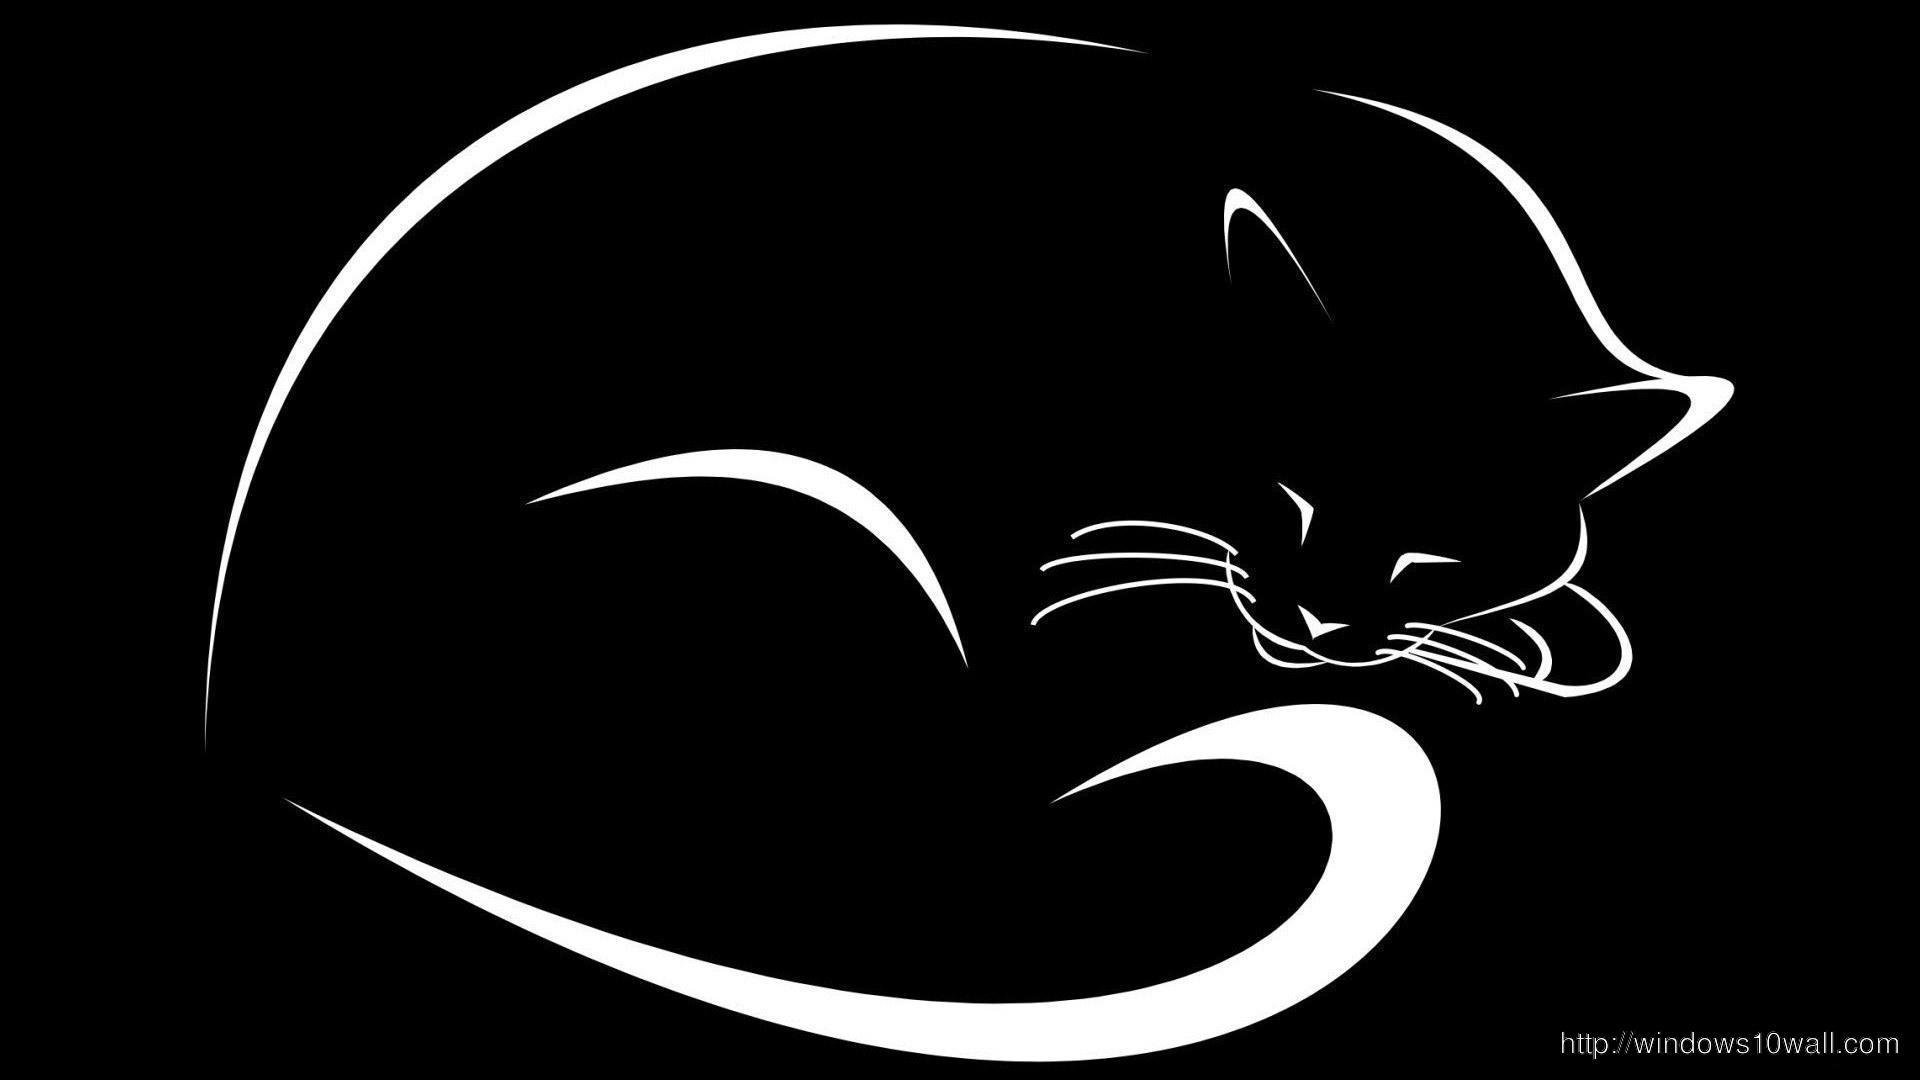 Black white abstract cat hd wallpaper windows 10 wallpapers - Black and white hd wallpapers black background ...